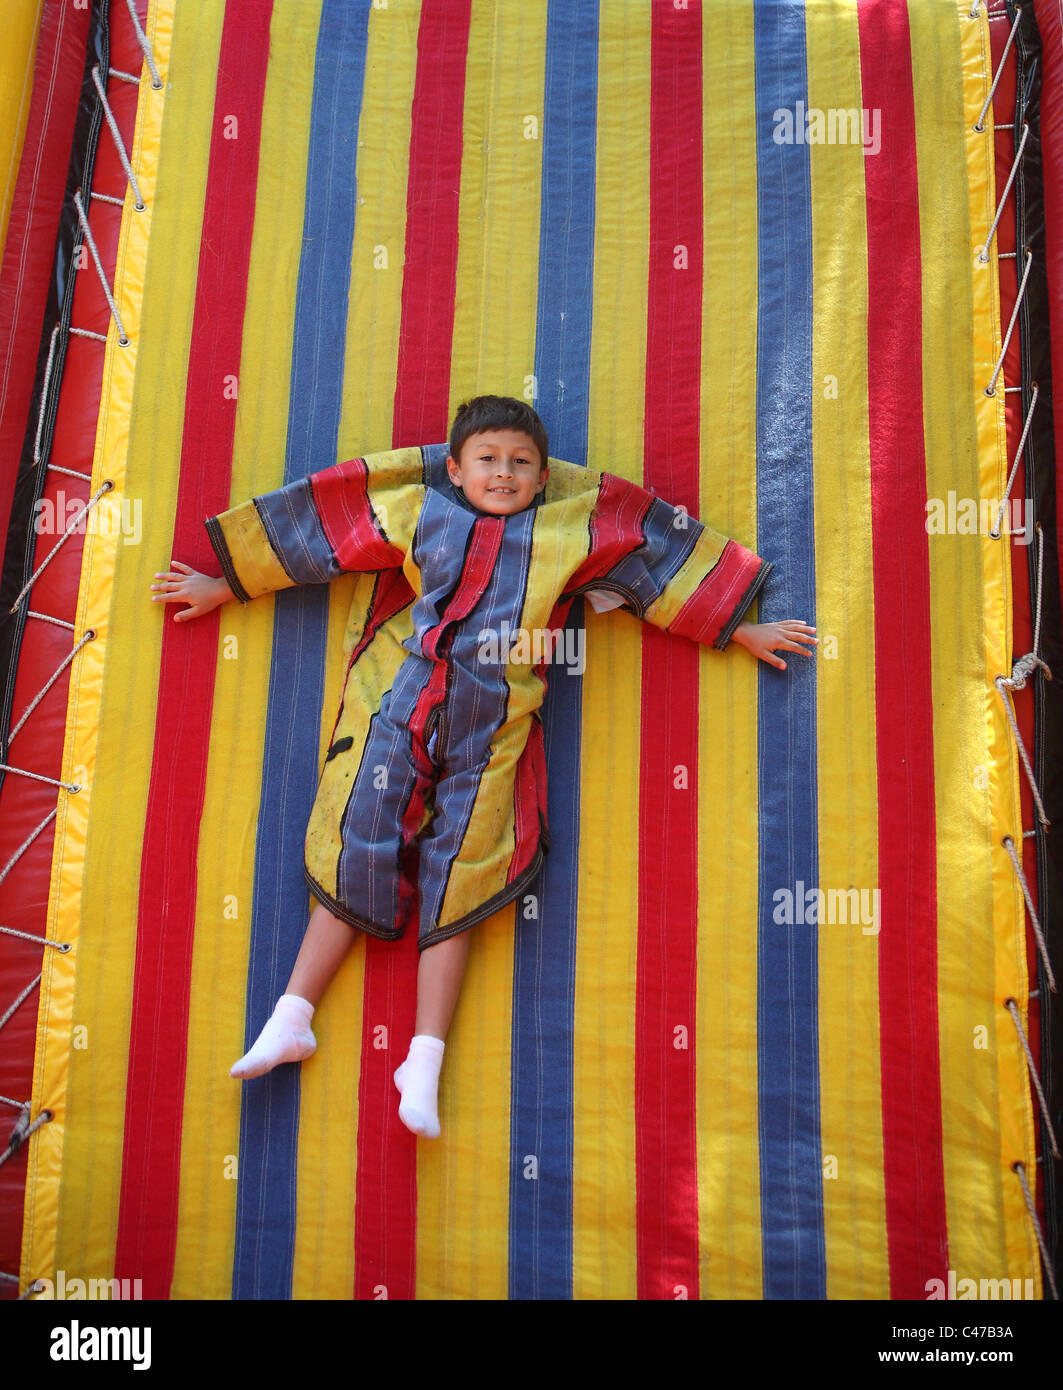 Boy playing on velcro sticky wall in colorful suit - Stock Image